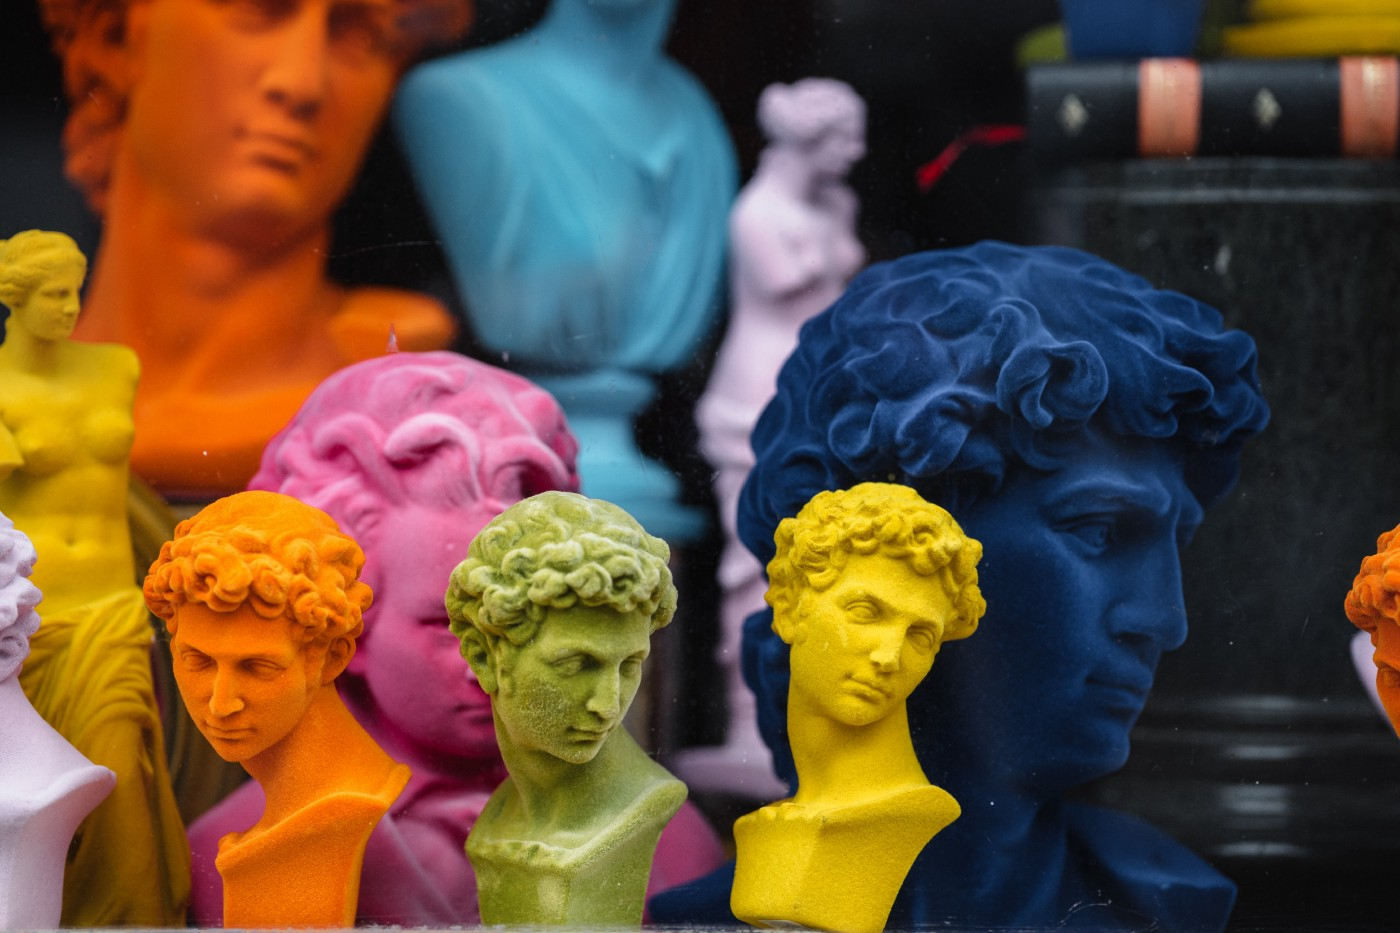 Plaster heads of Greek philosophers painted in different sizes and colors to. buy at a souvenir shop—orange, yellow, green, pink